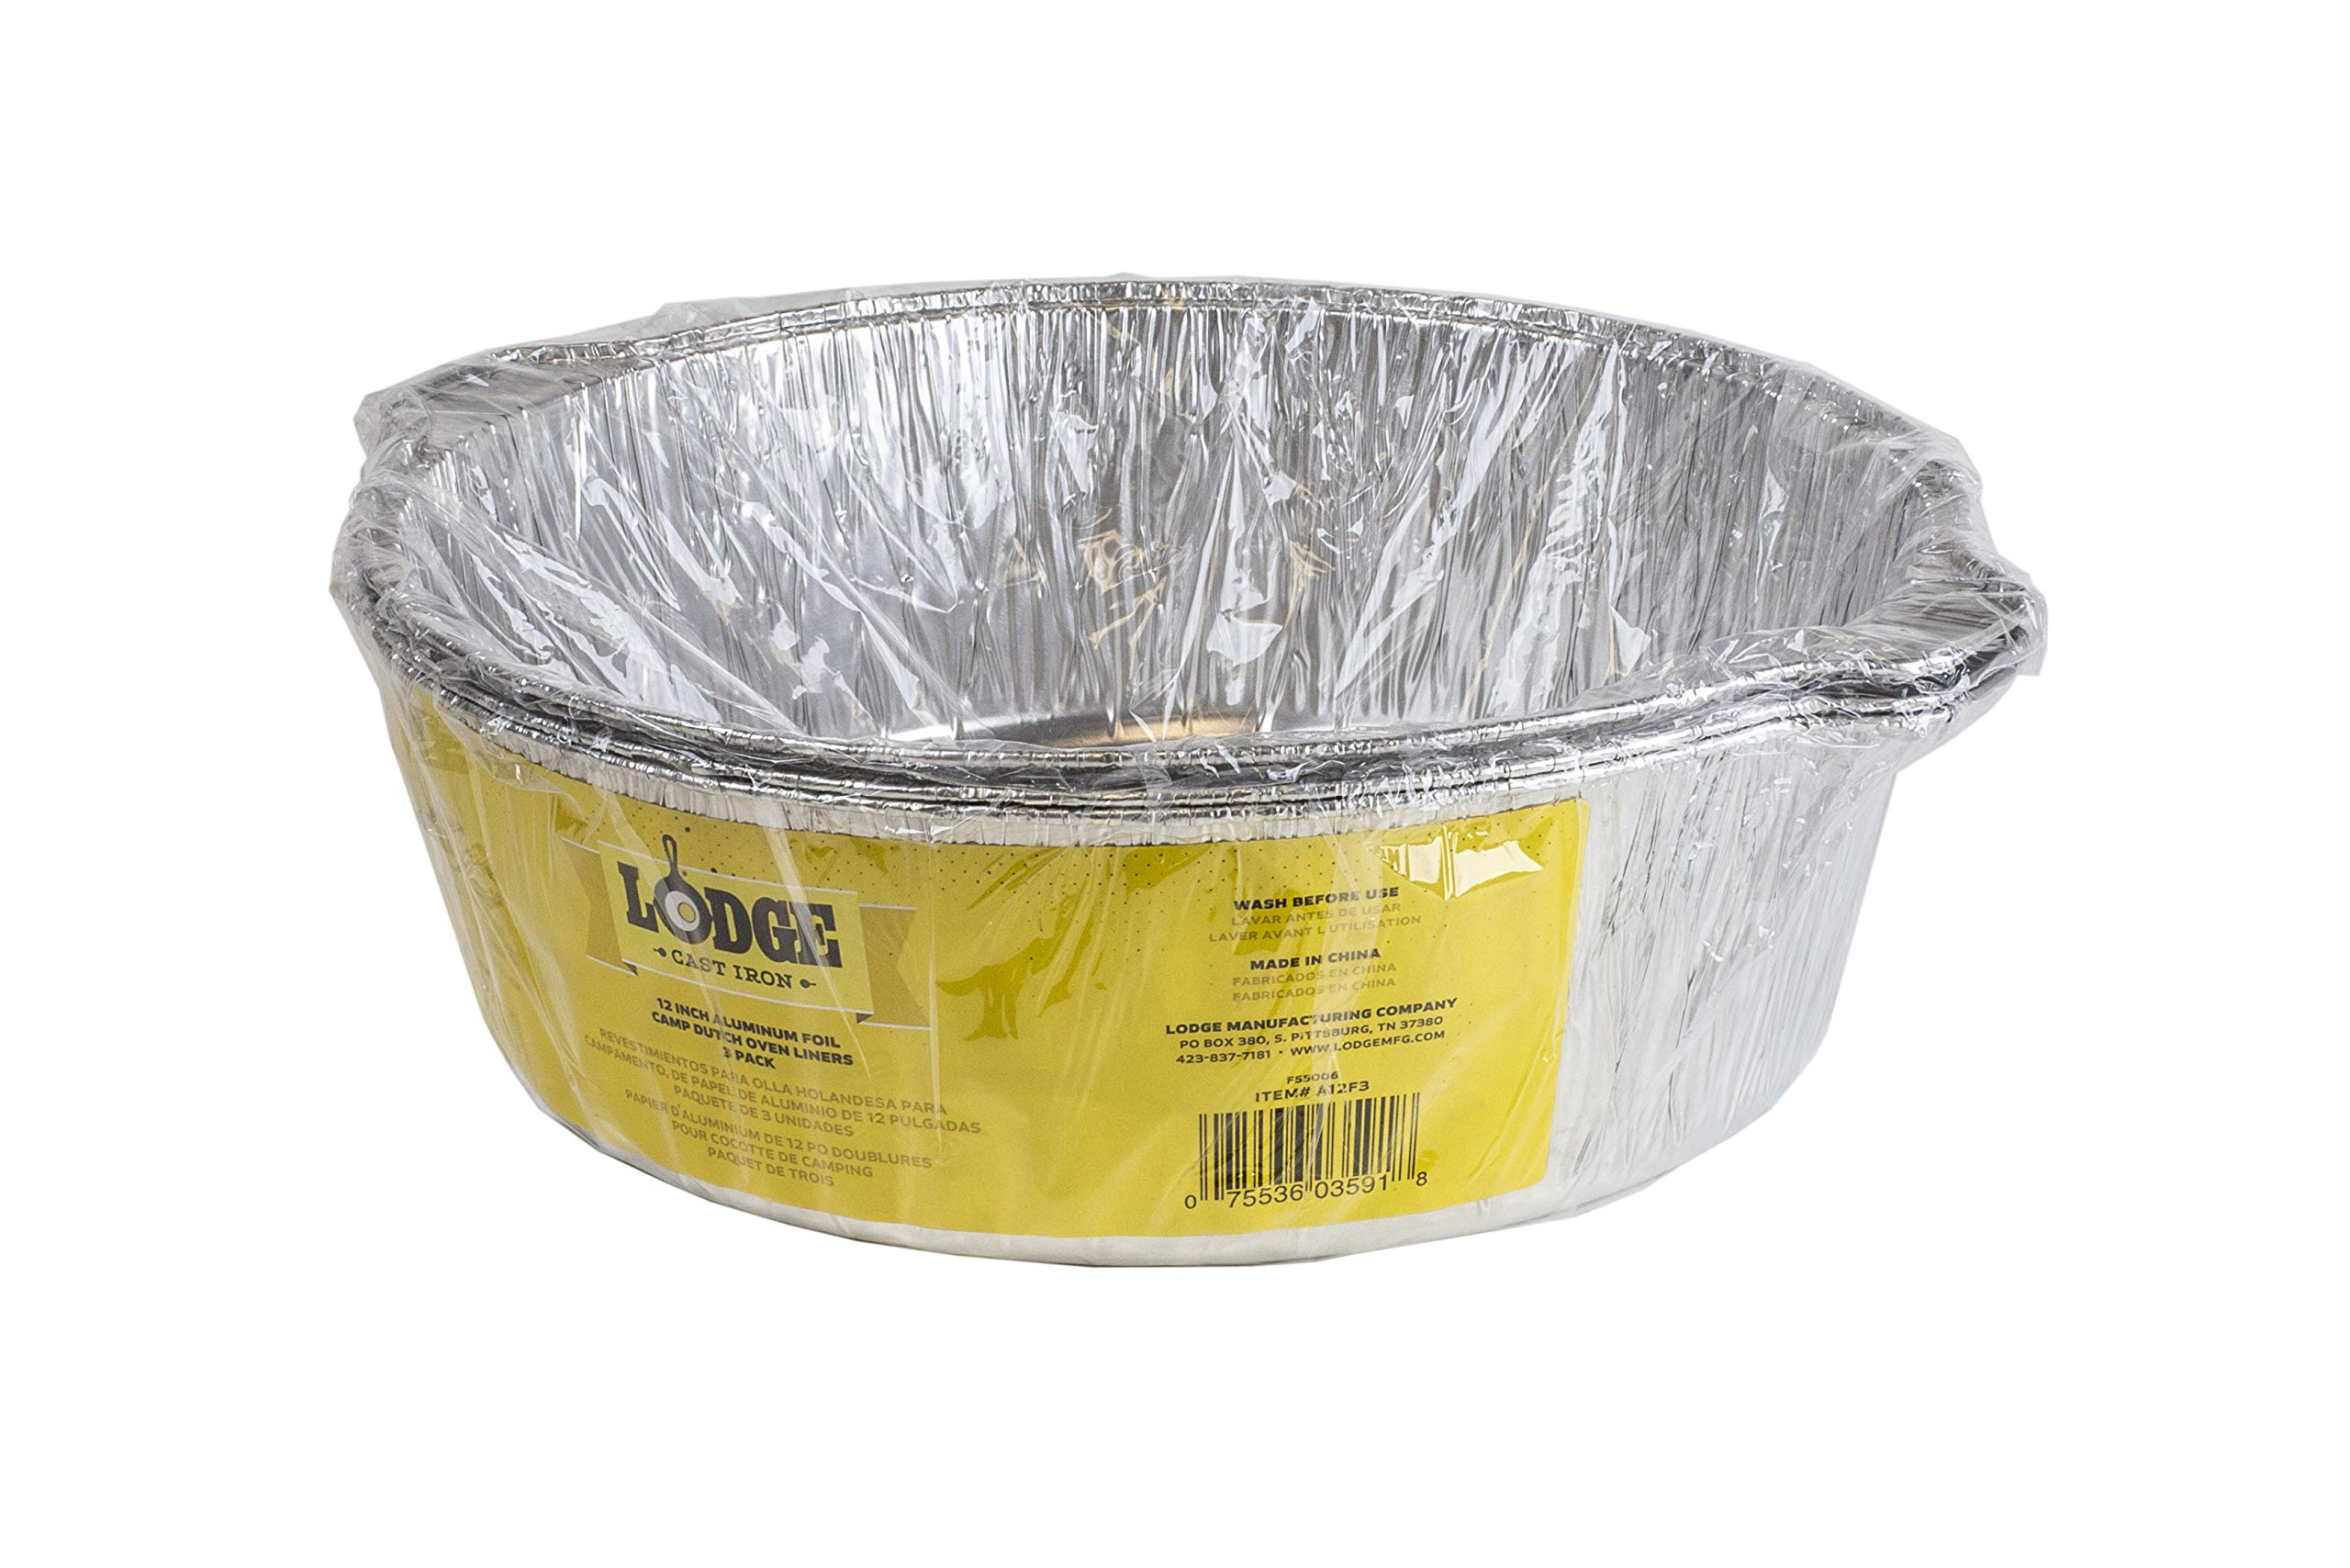 Lodge A12F3 12-Inch Aluminum Foil Dutch Oven Liners 3-Pack Silver by Lodge (Image #3)